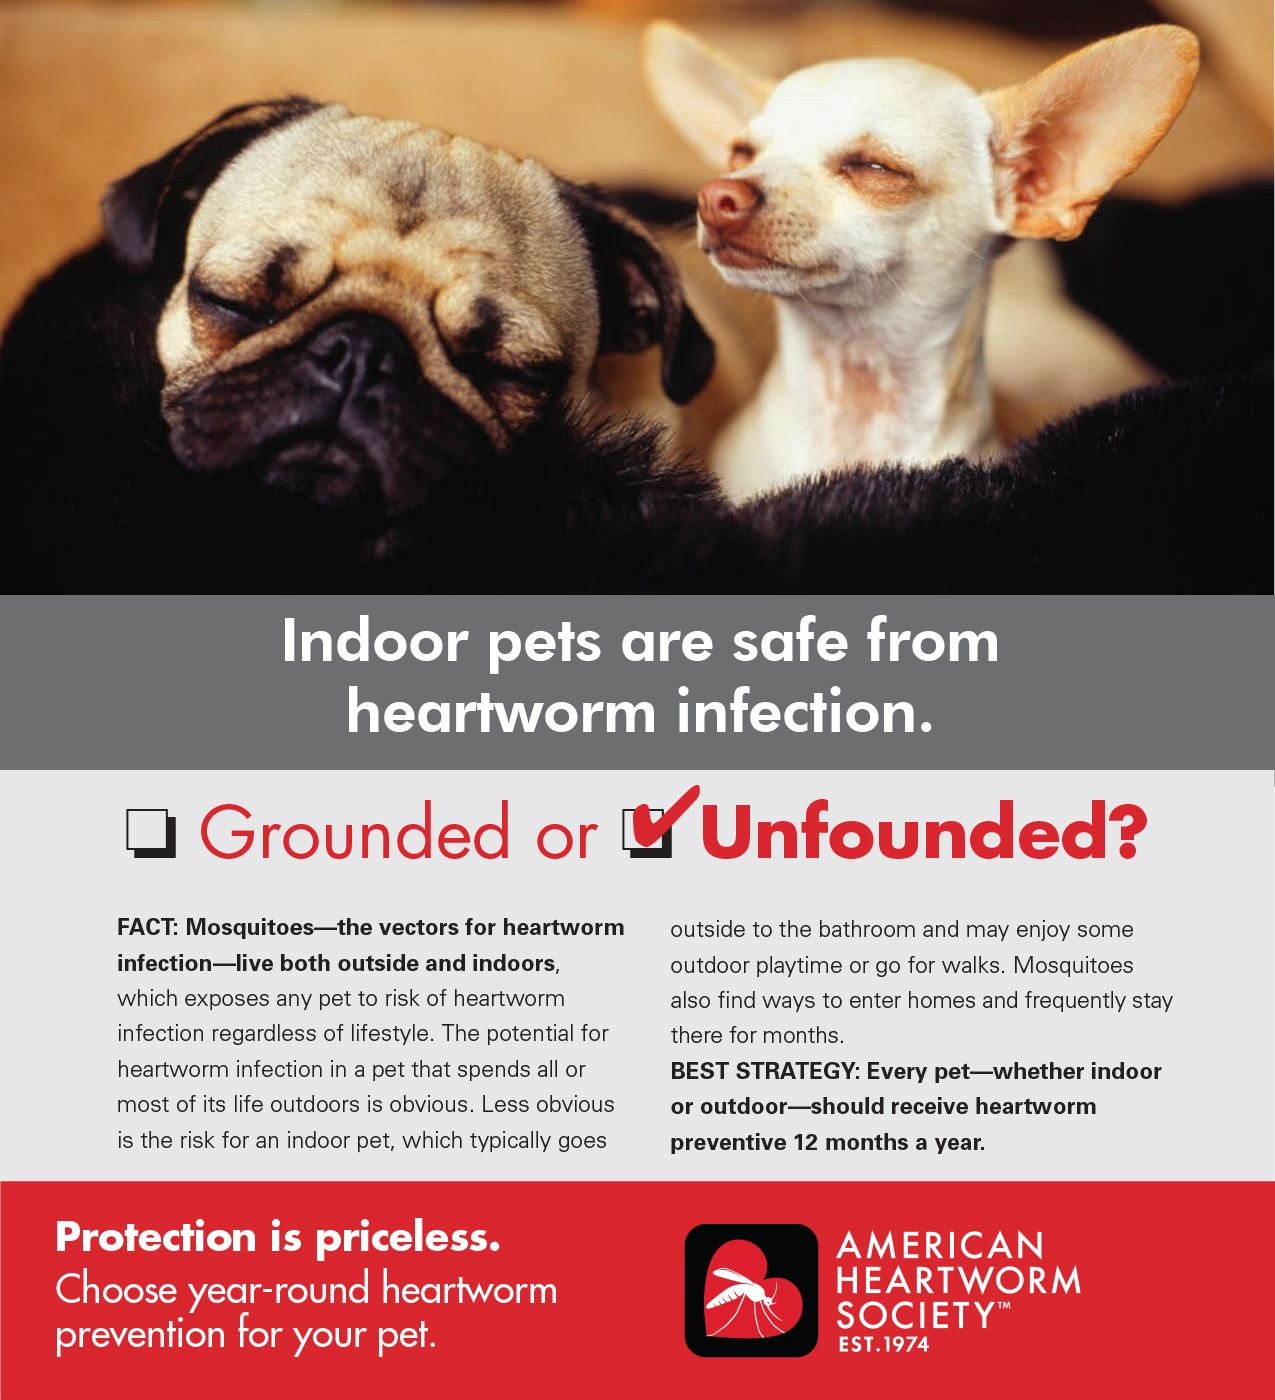 Heartworm prevention is important for all pets, not just